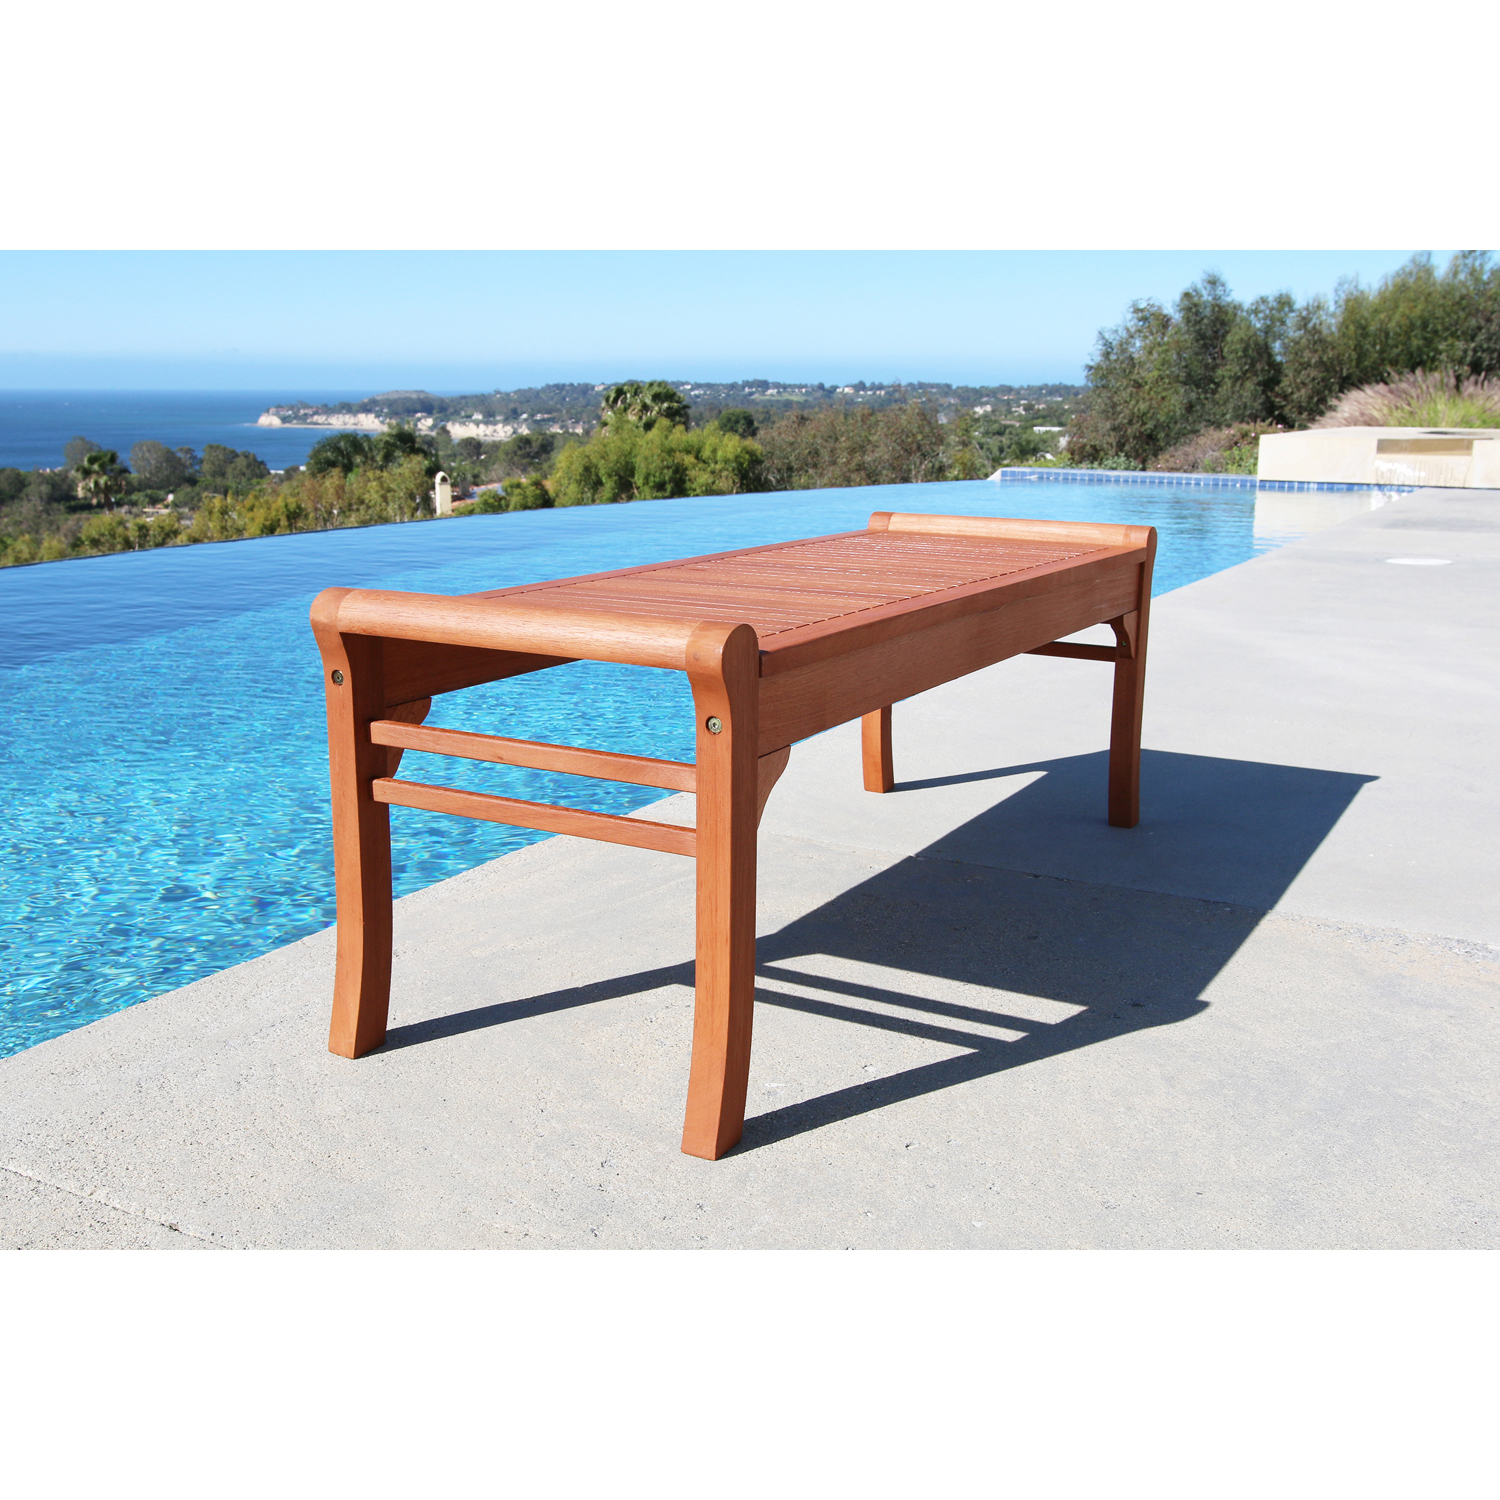 5' Malibu Brown Wood Backless Garden Bench with Curved Edges